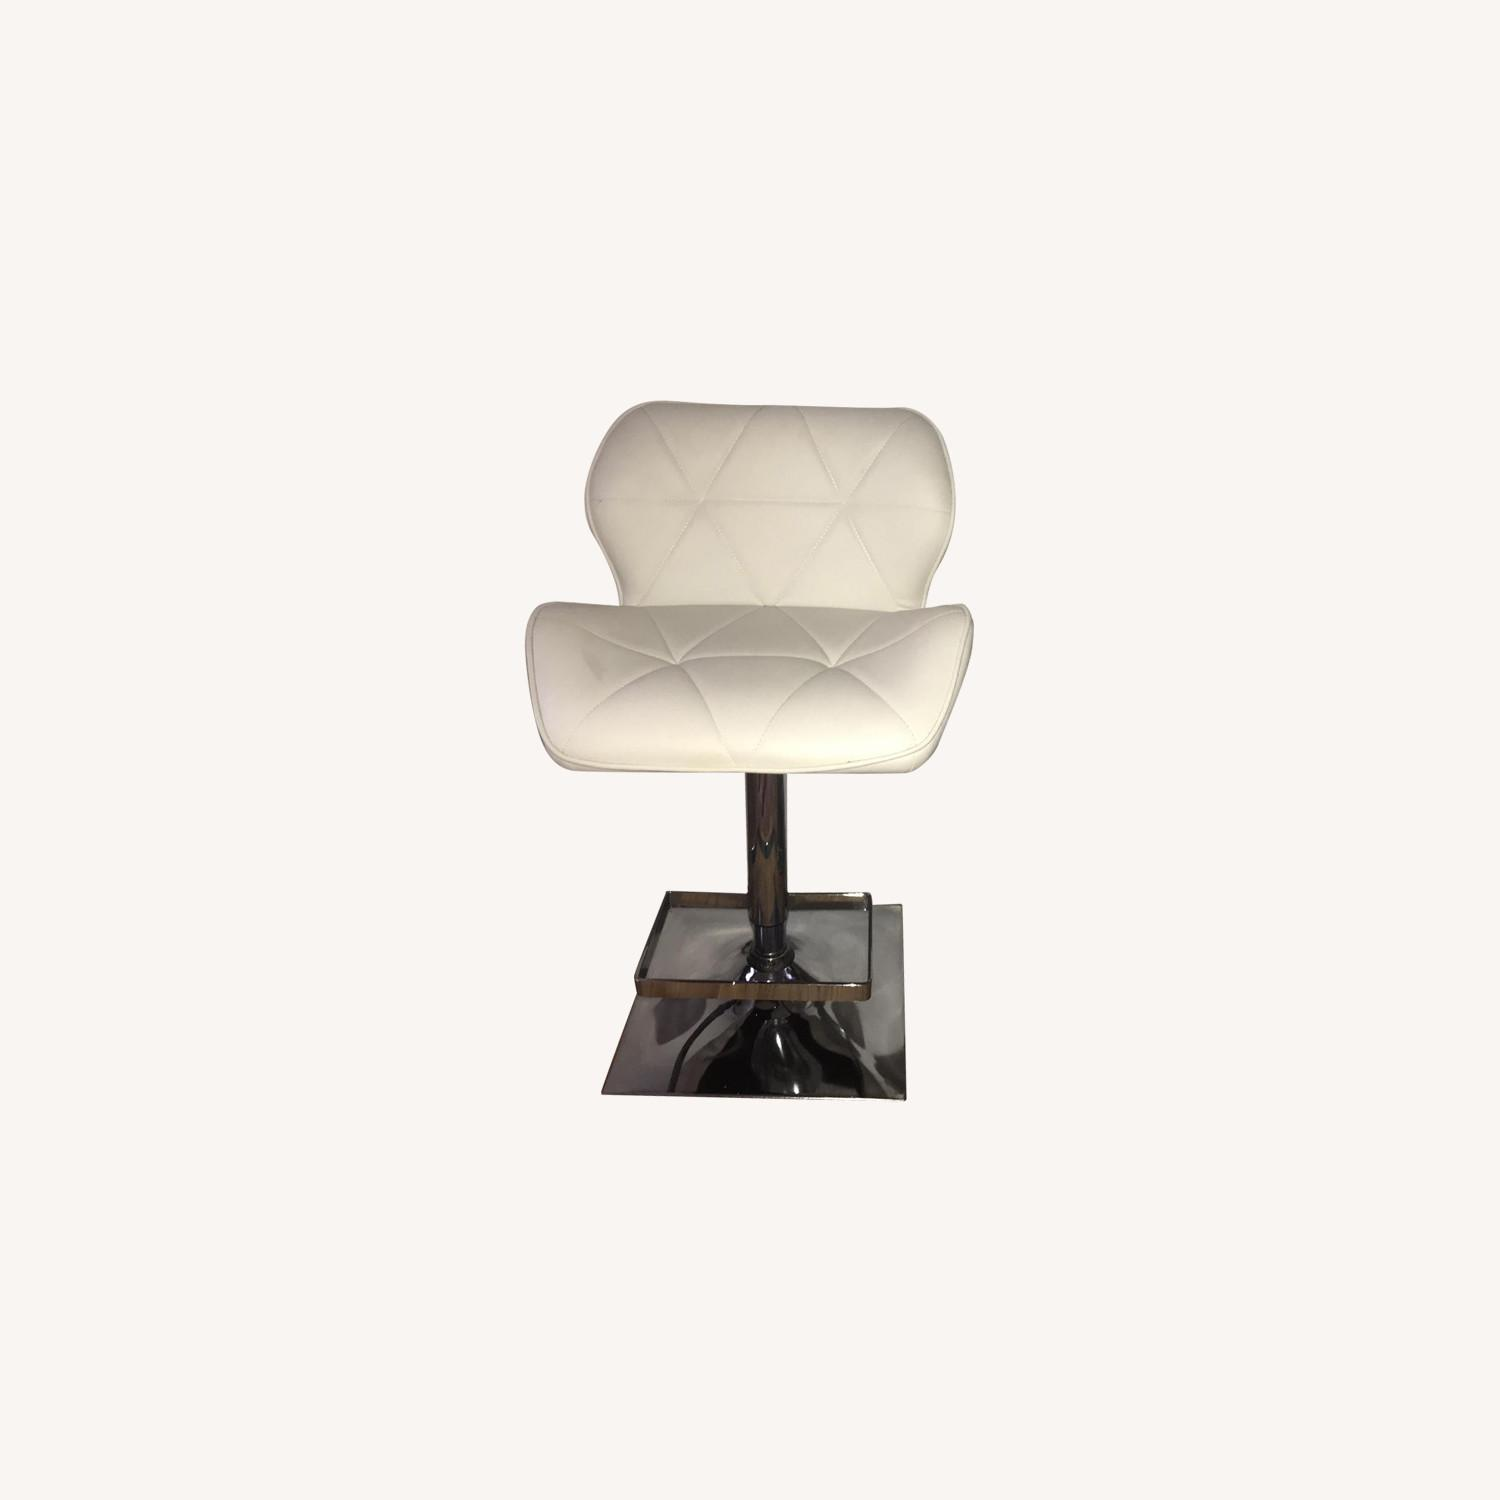 Anji Tianwei Steel White Faux Leather Bar Chairs - image-0